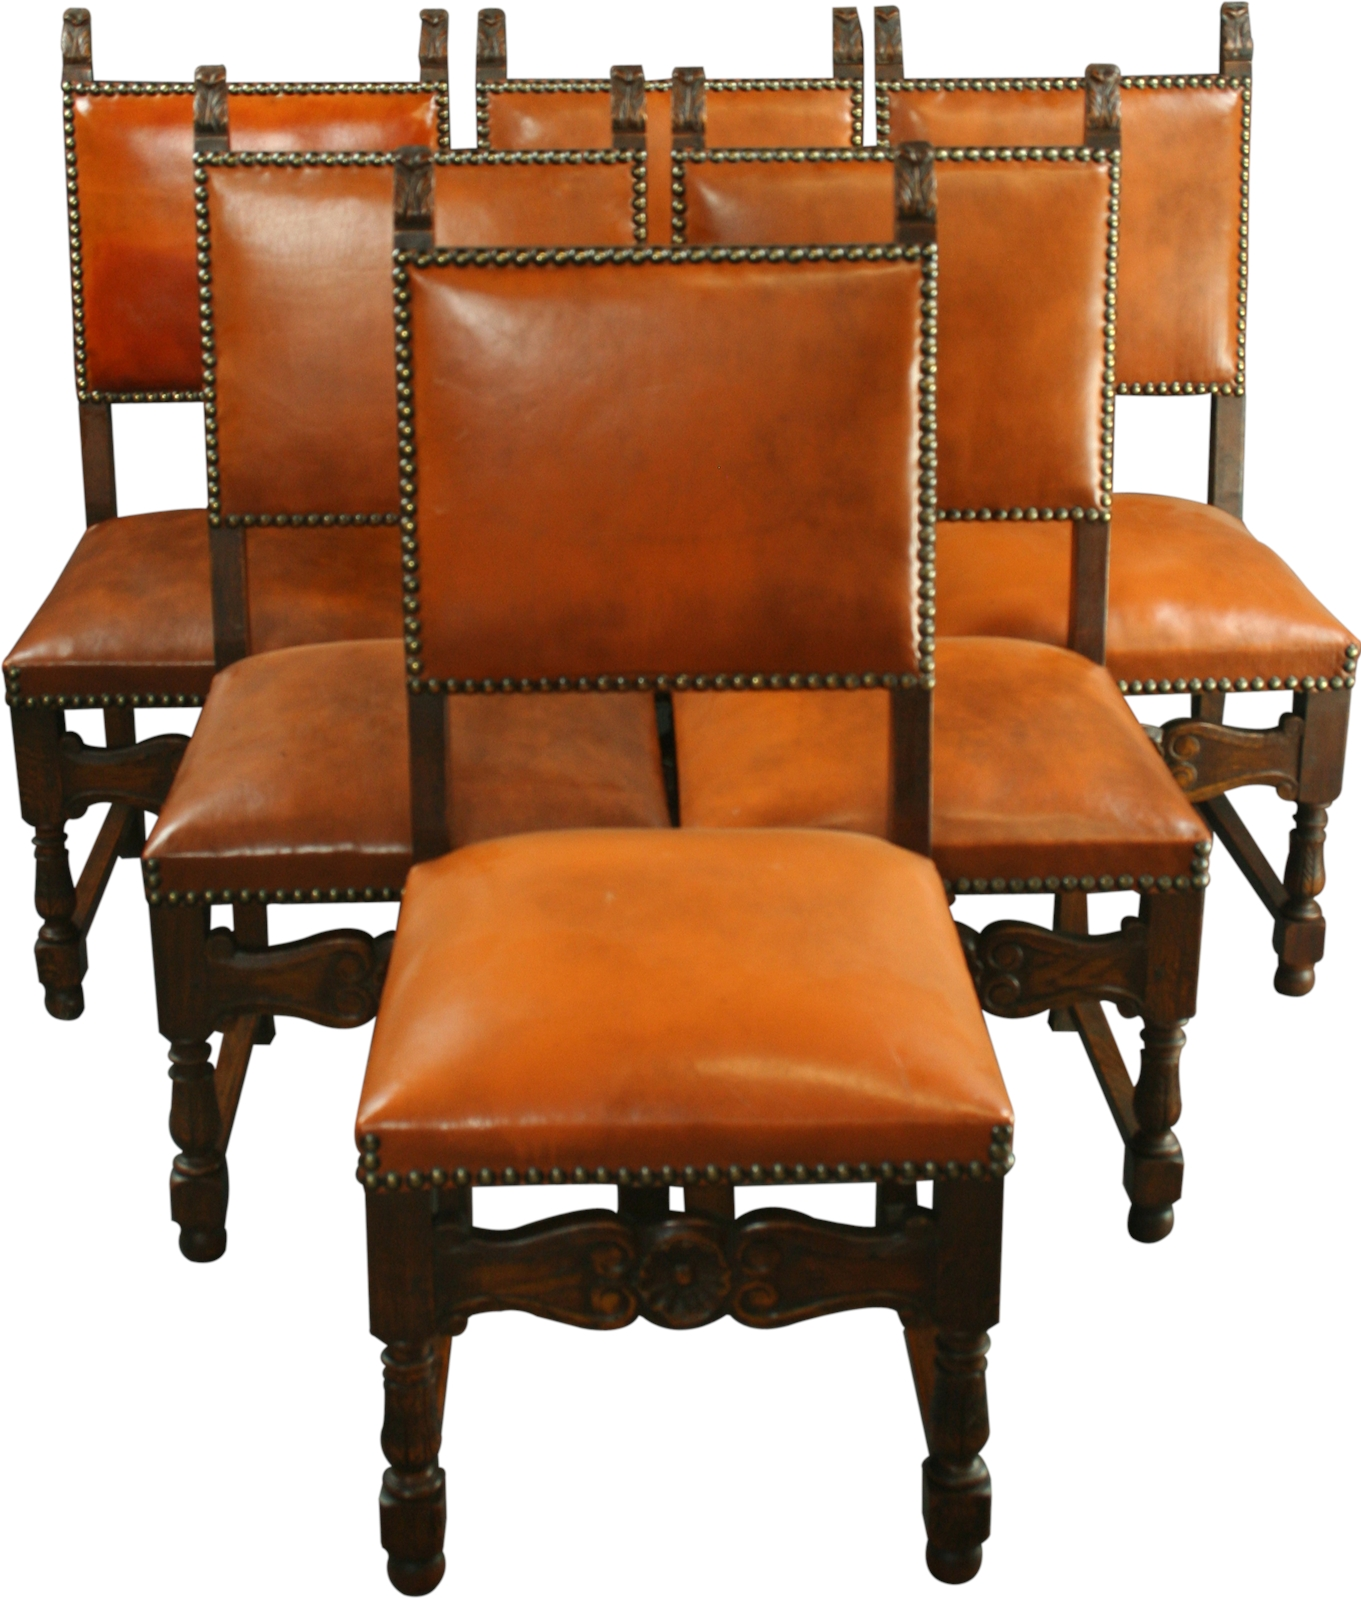 Spanish Style Dining Room Furniture: SPANISH MISSION STYLE OAK DINING CHAIRS, LEATHER, CARVED